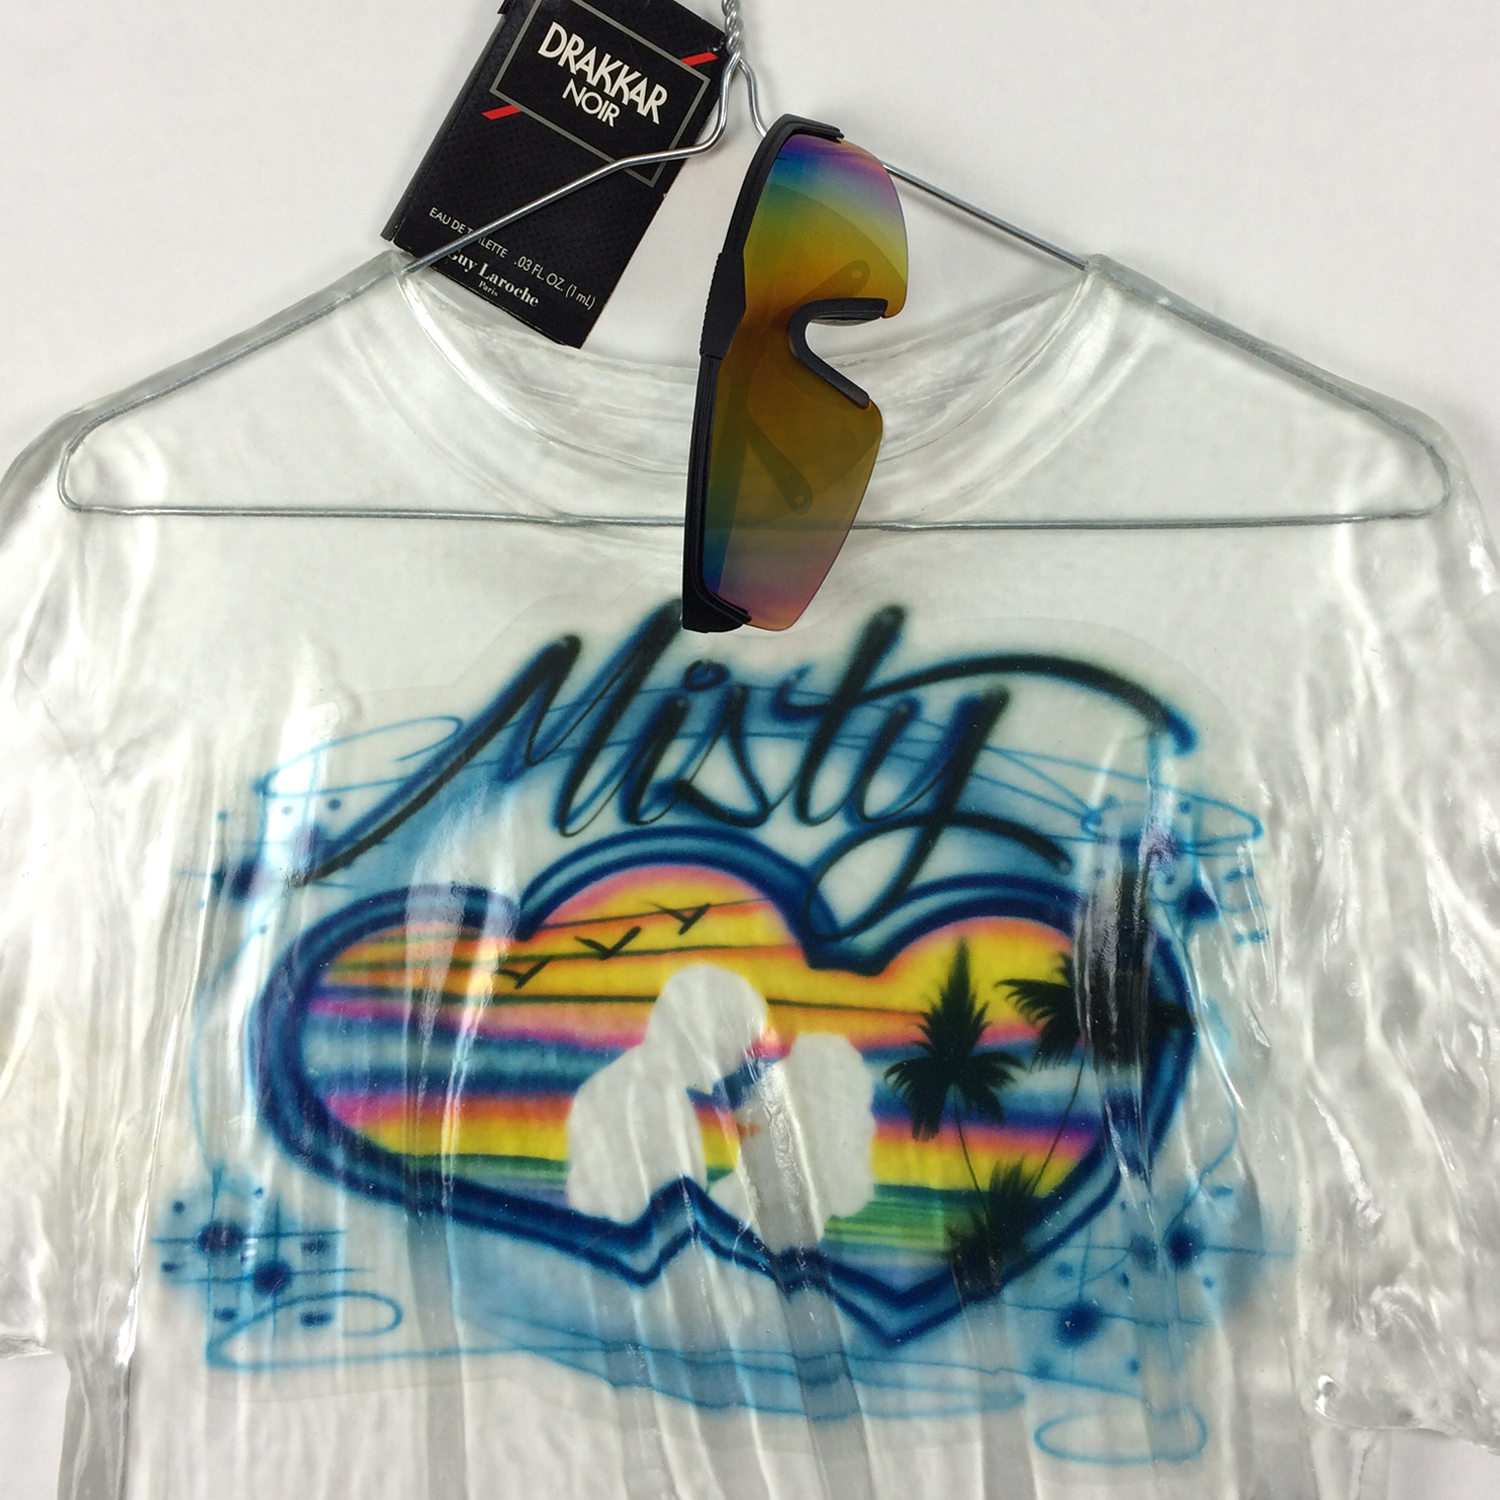 all shirts 1500 x 1500 - hanger and graphic m3.jpg